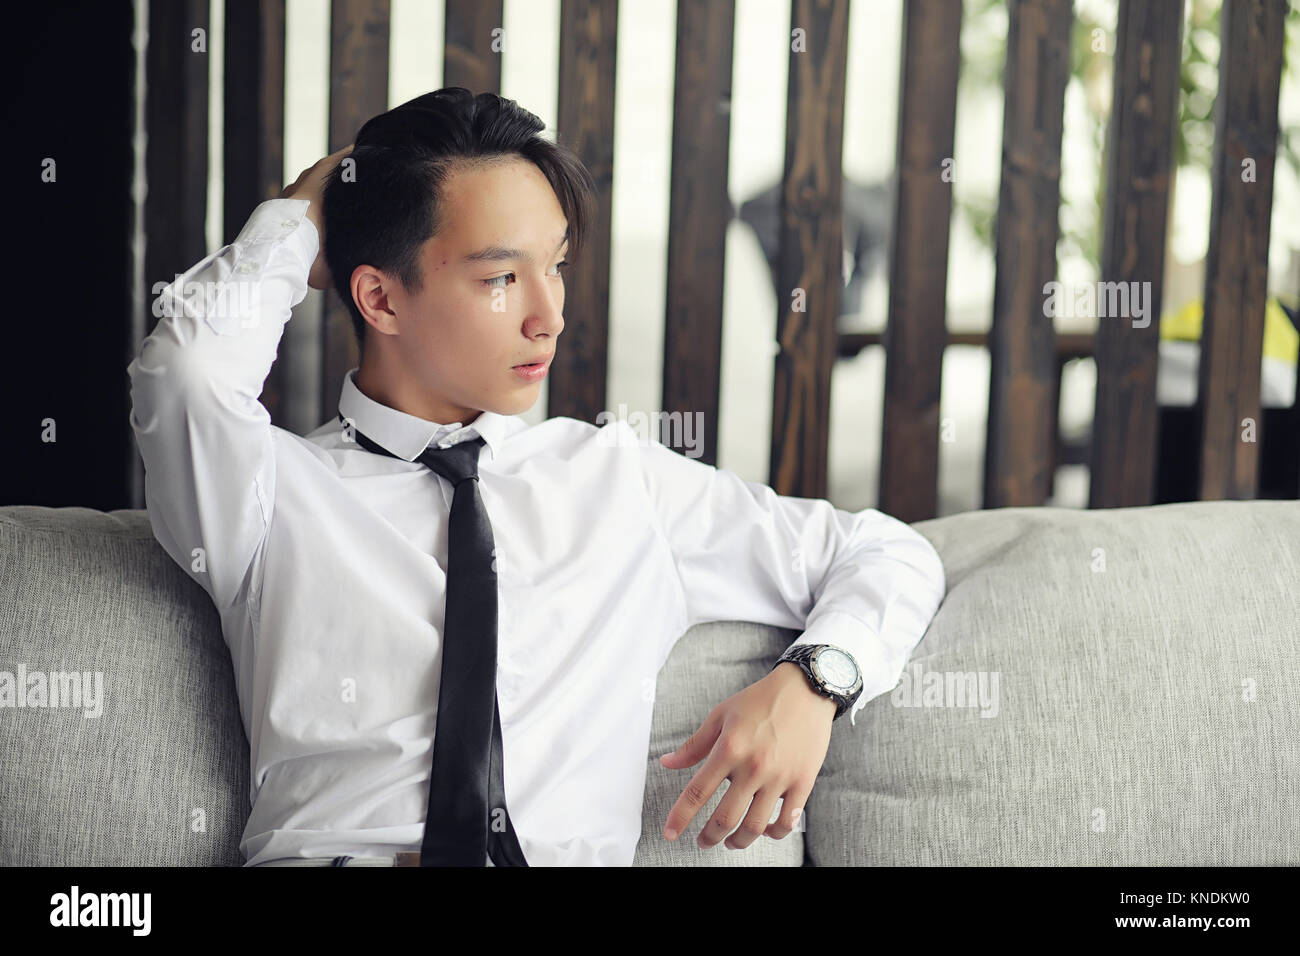 A young Asian businessman is waiting for a partner in a cafe. Bu - Stock Image